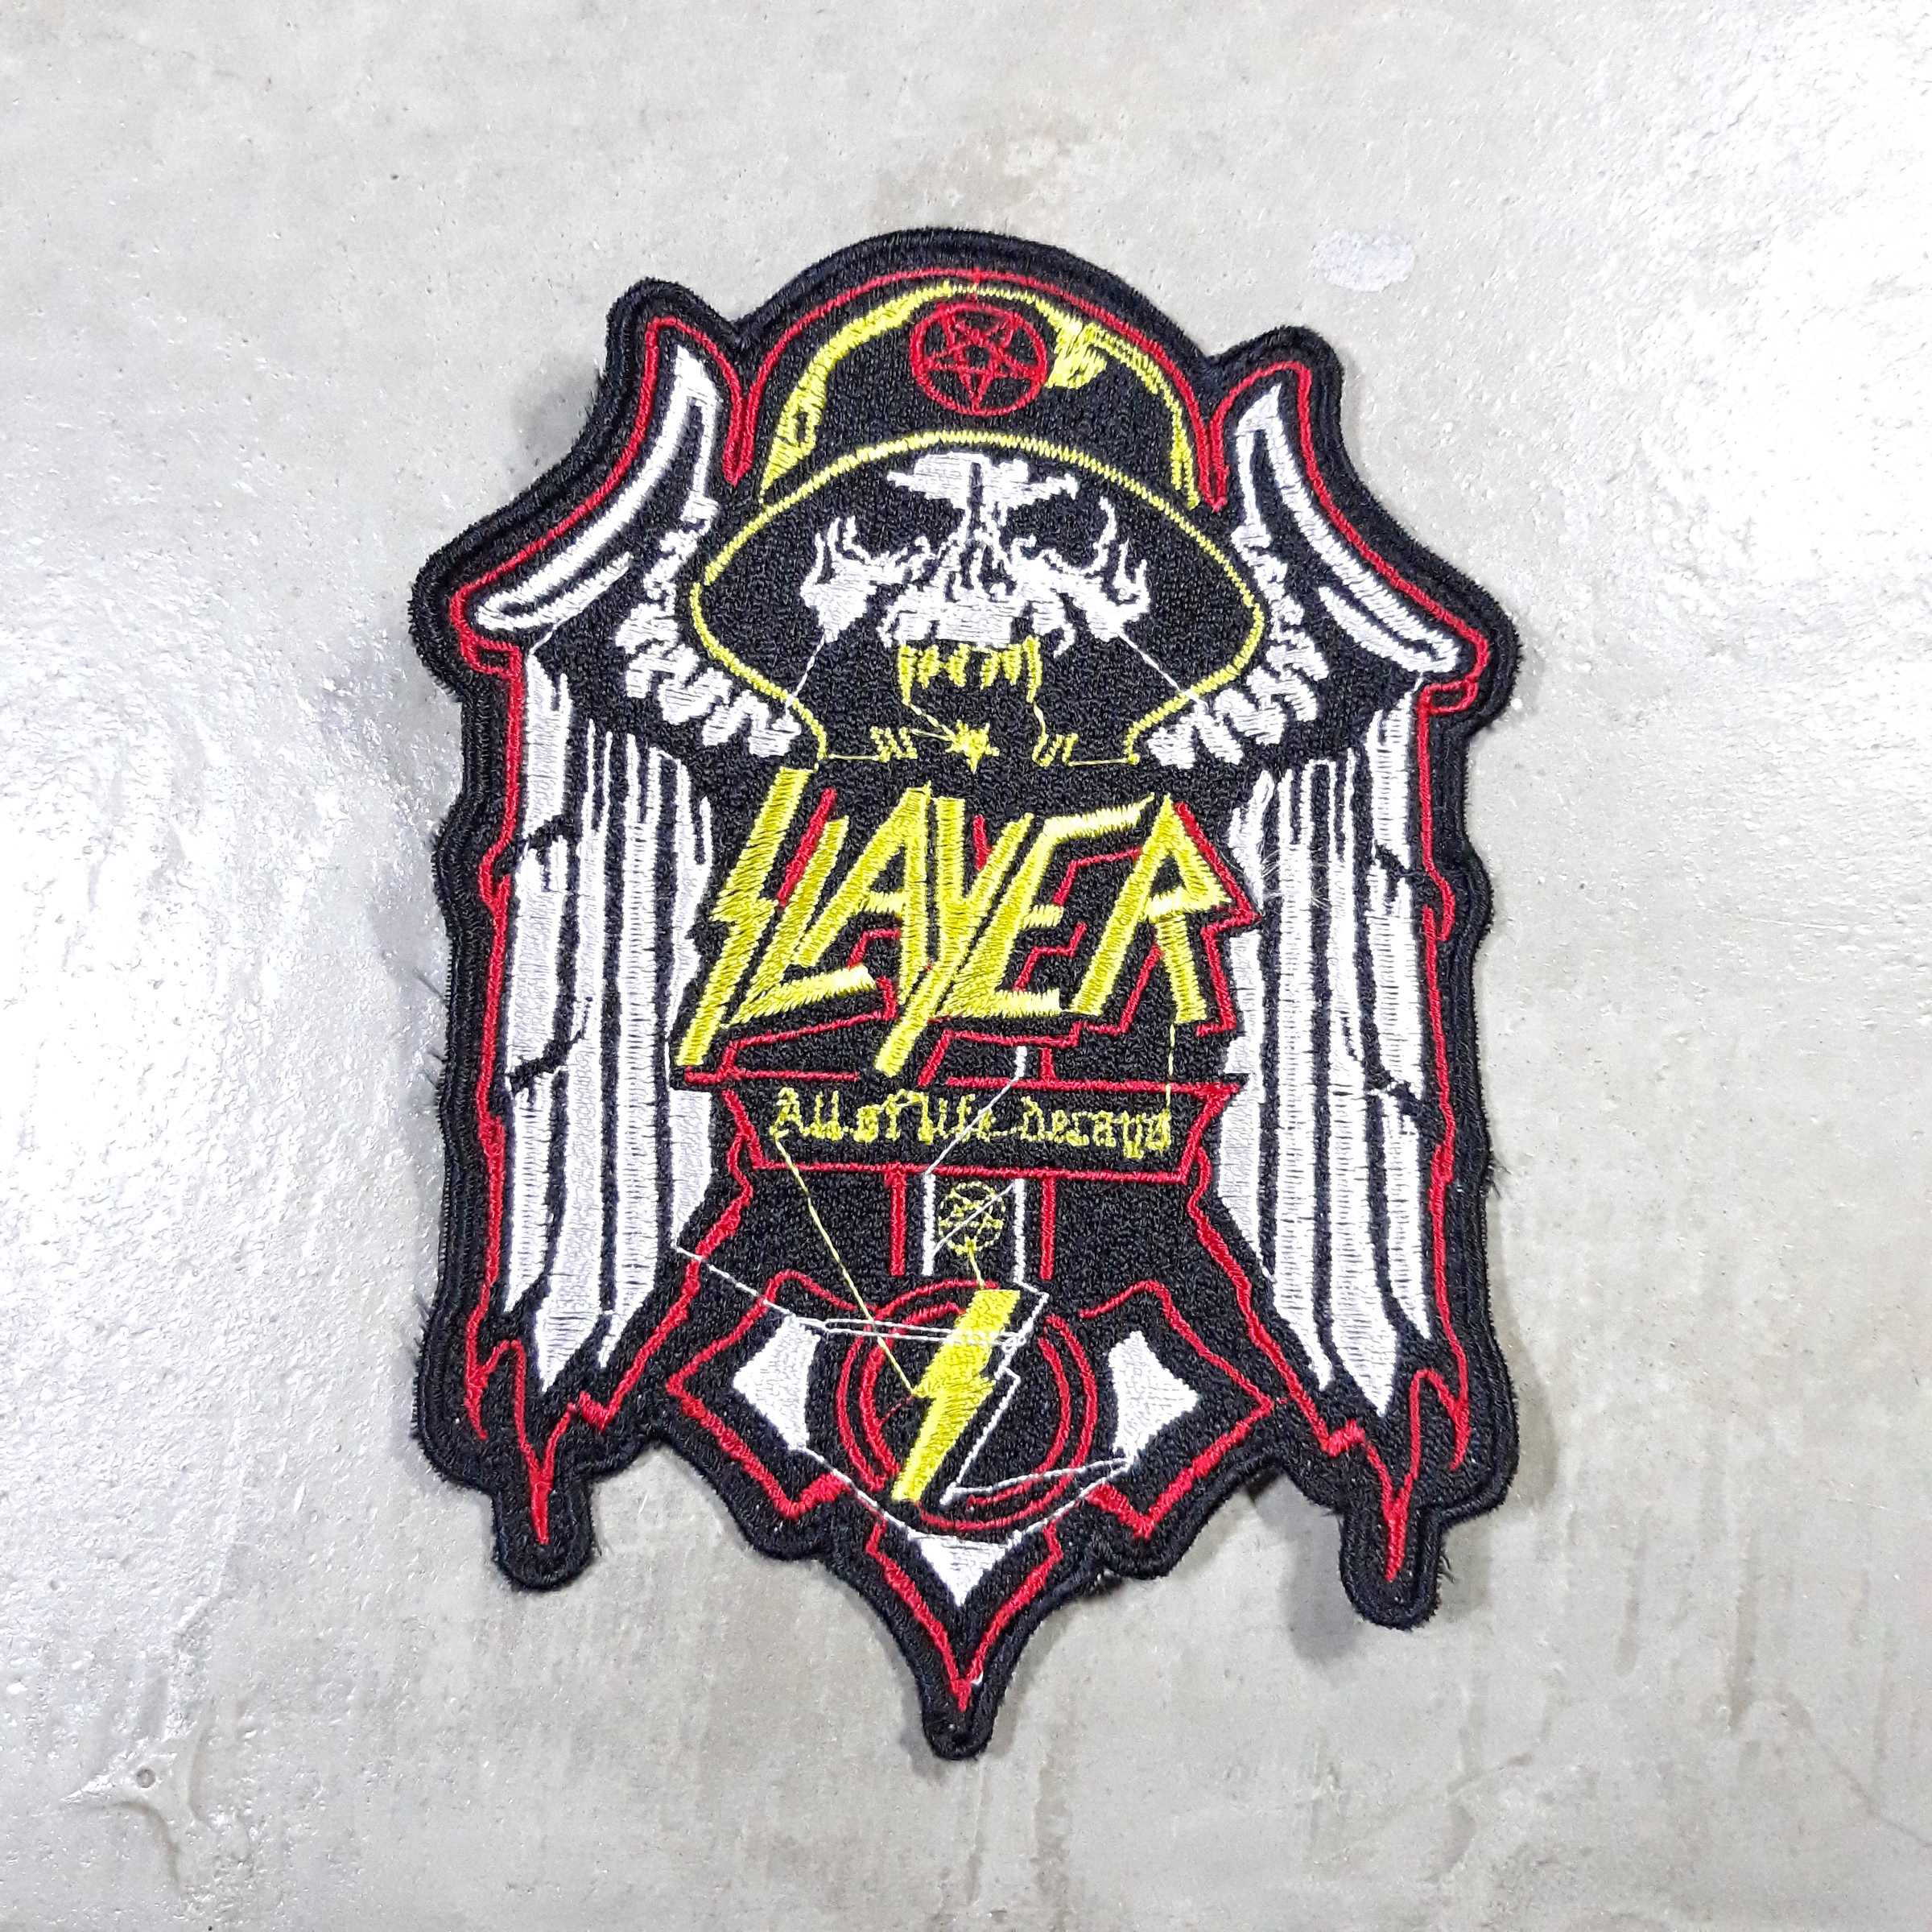 Slayer-all of life decay patch.jpg